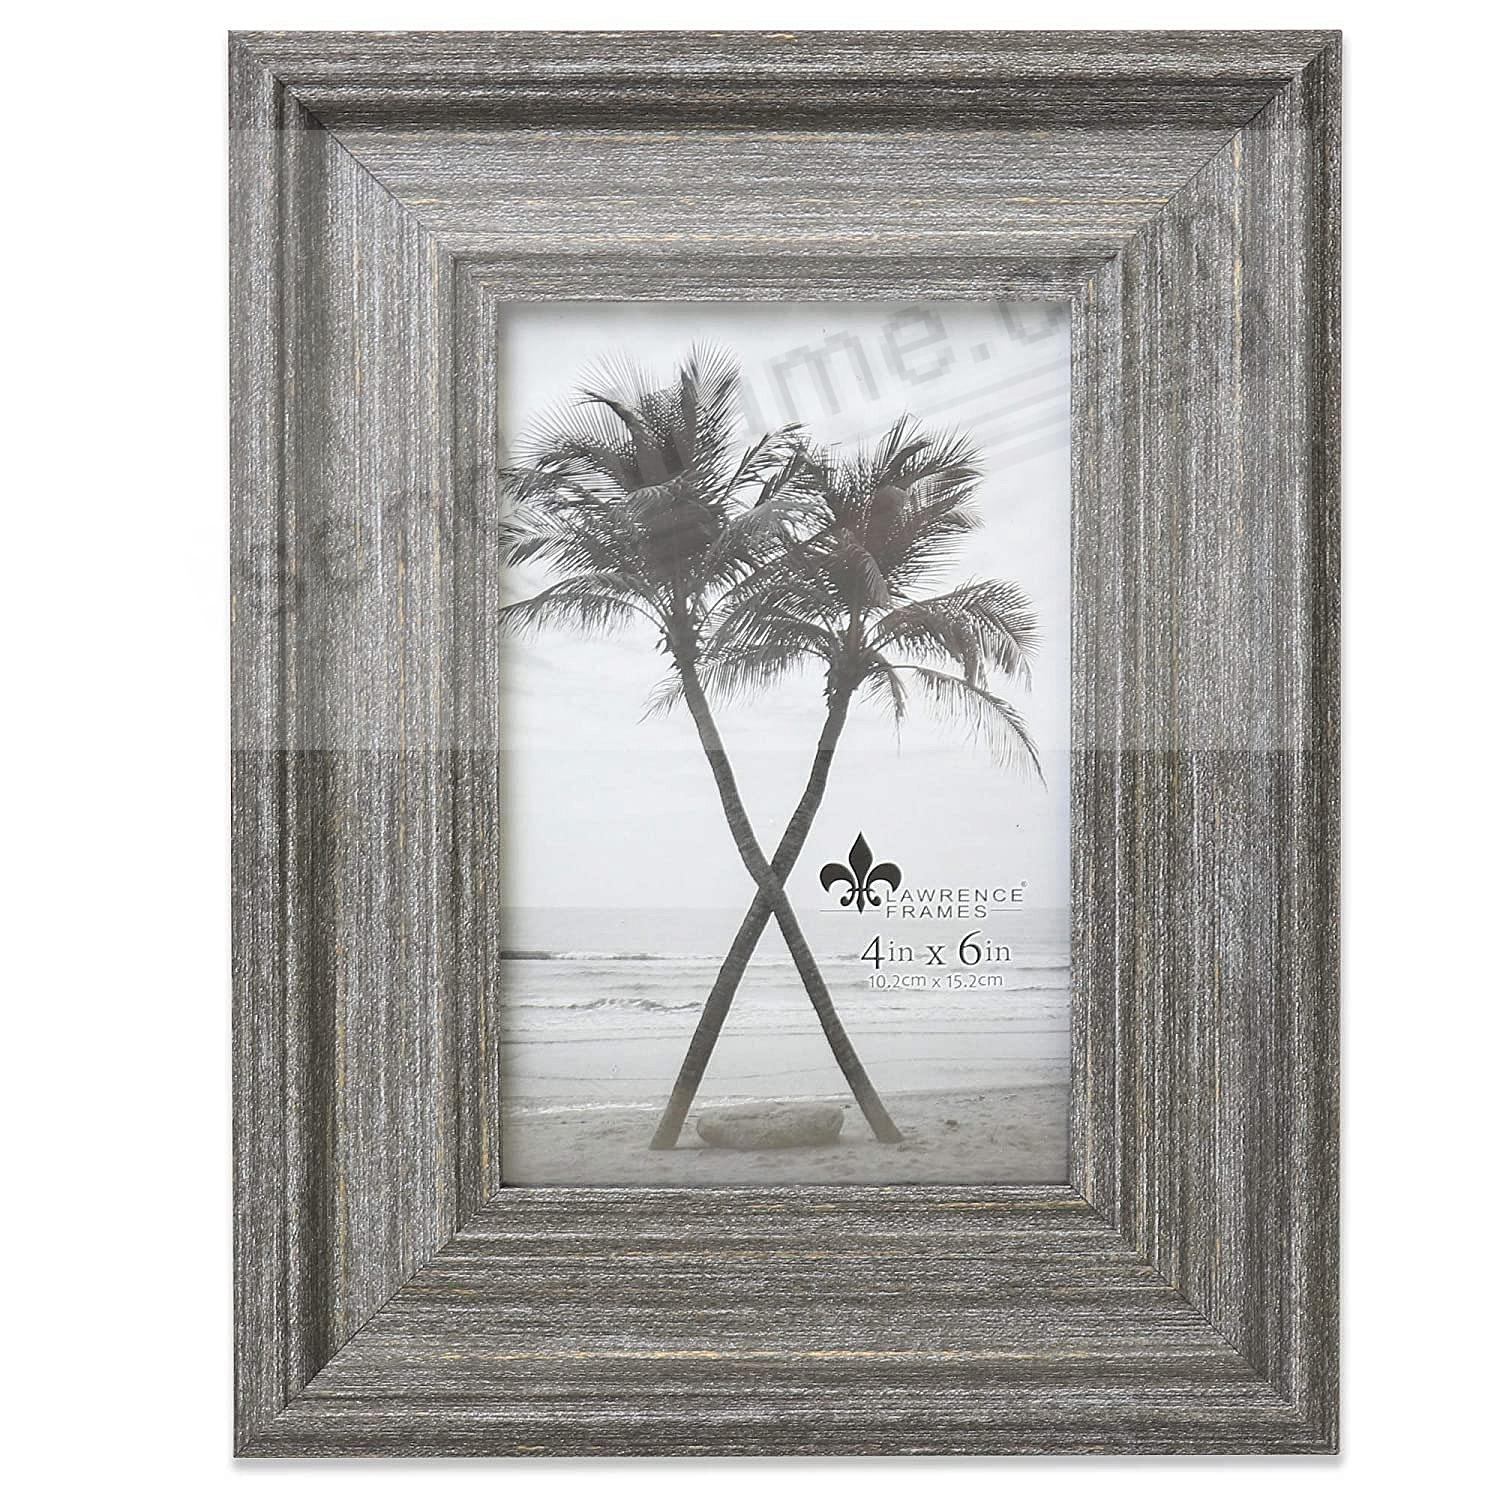 Antique GRAY MARLO 4x6 frame by Lawrence®